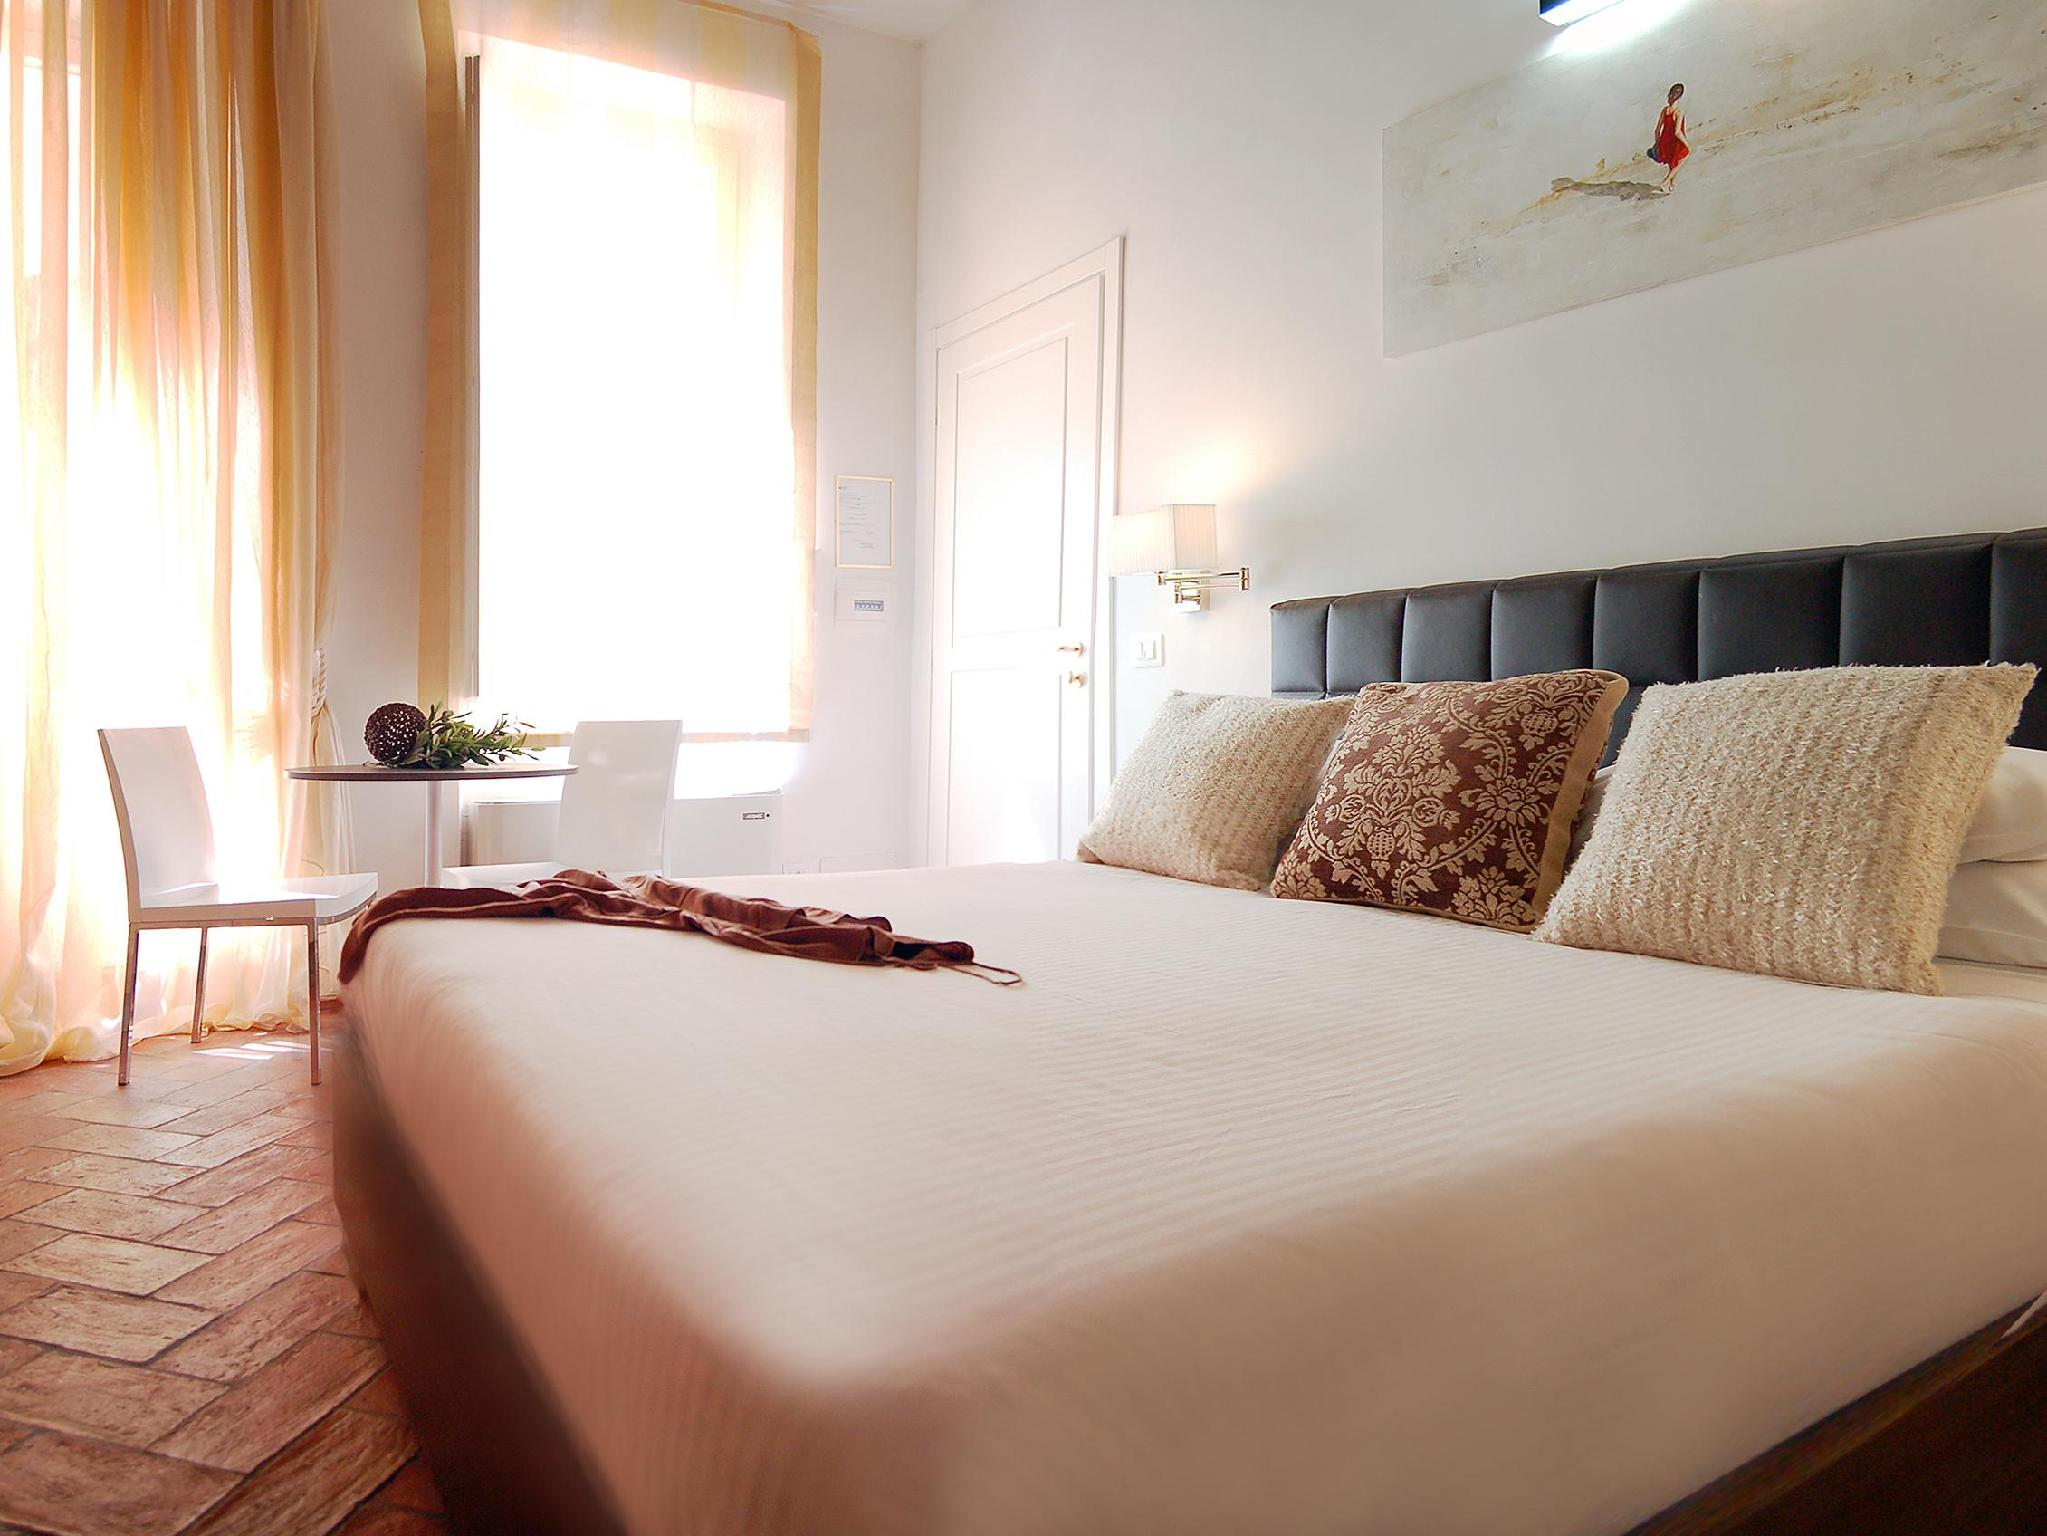 Best price on navona luxury apartments in rome reviews for Hotel luxury navona